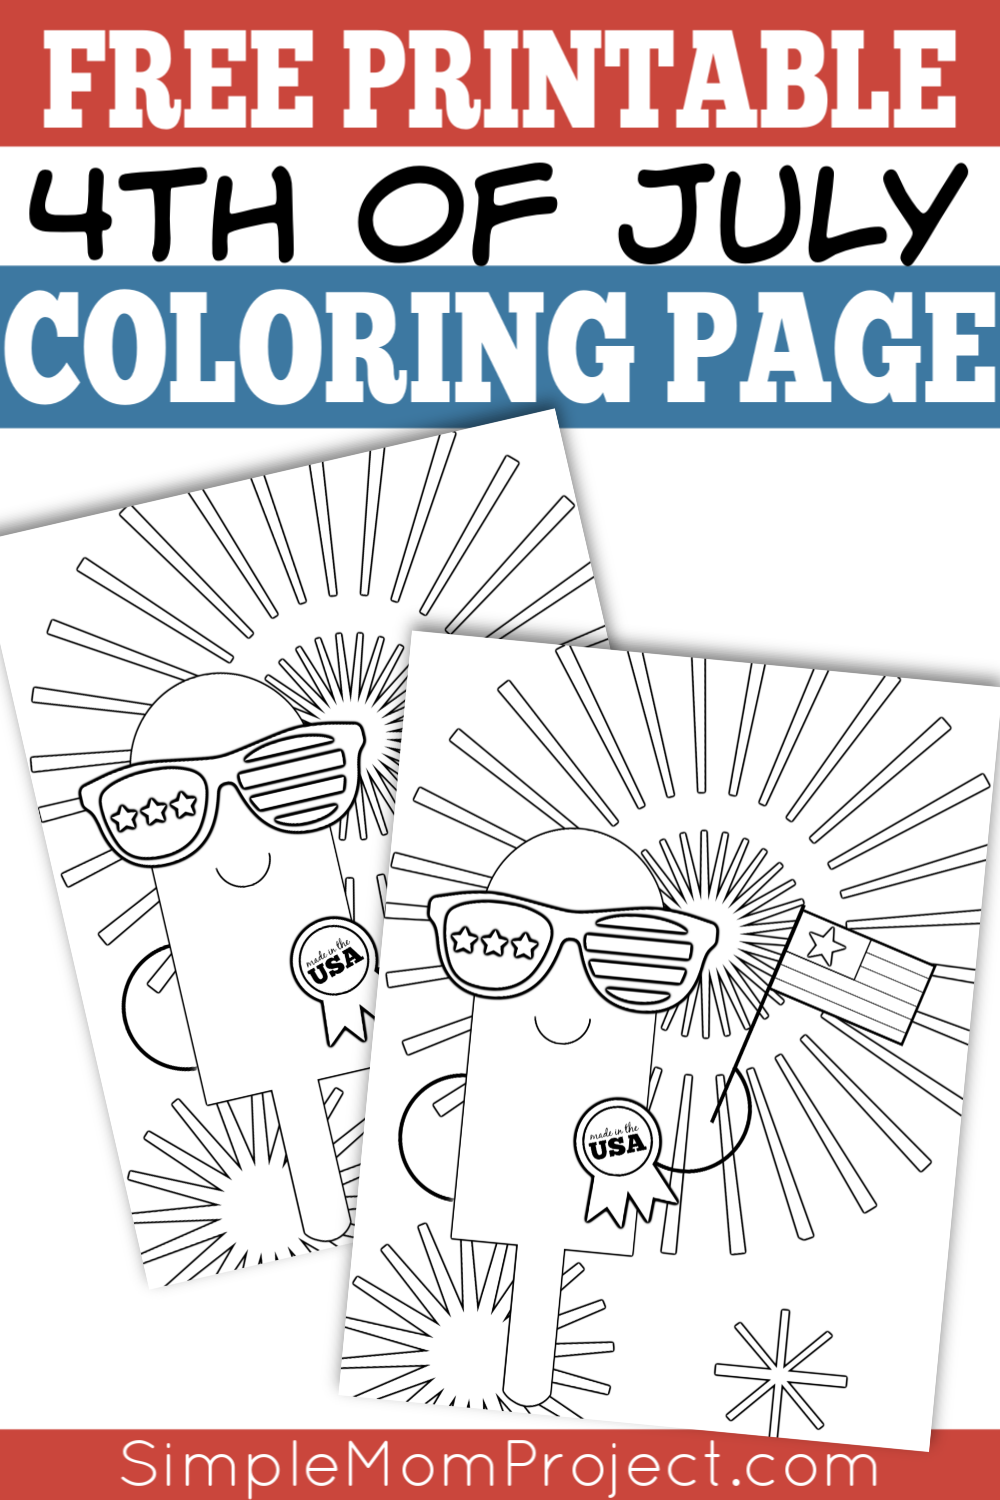 Free Printable Independence Day Fourth Of July Coloring Page Simple Mom Project July Colors Diy Crafts For Girls Coloring Pages